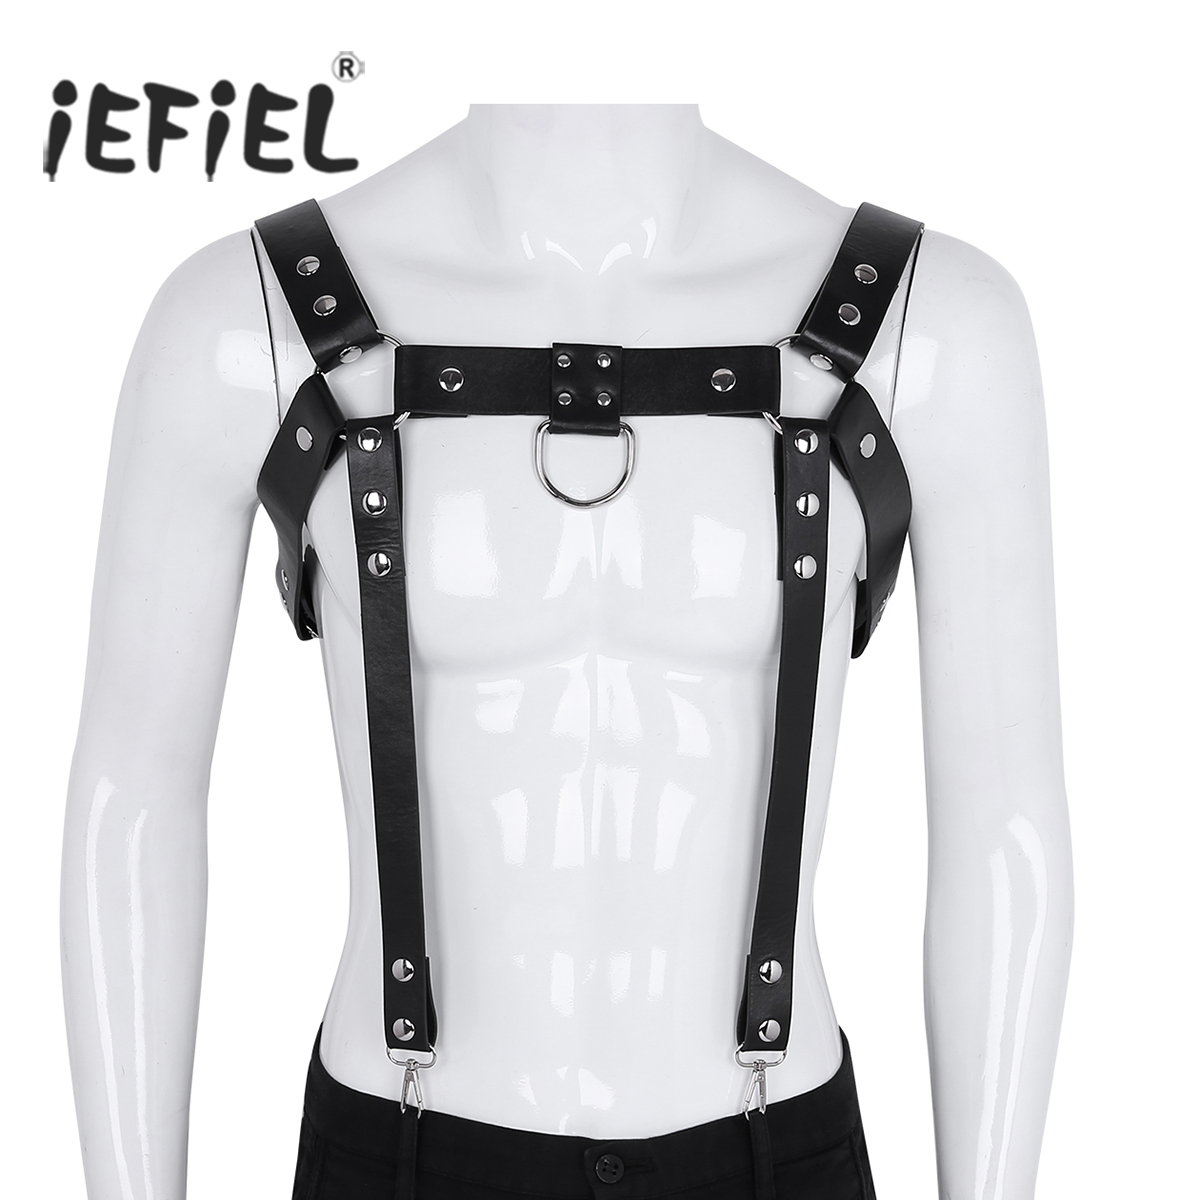 Mens Adjustable PU Leather Metal Rivet Studs Body Chest Half Harness Suspenders Belt with Buckles O-Rings Cosplay Club Costumes